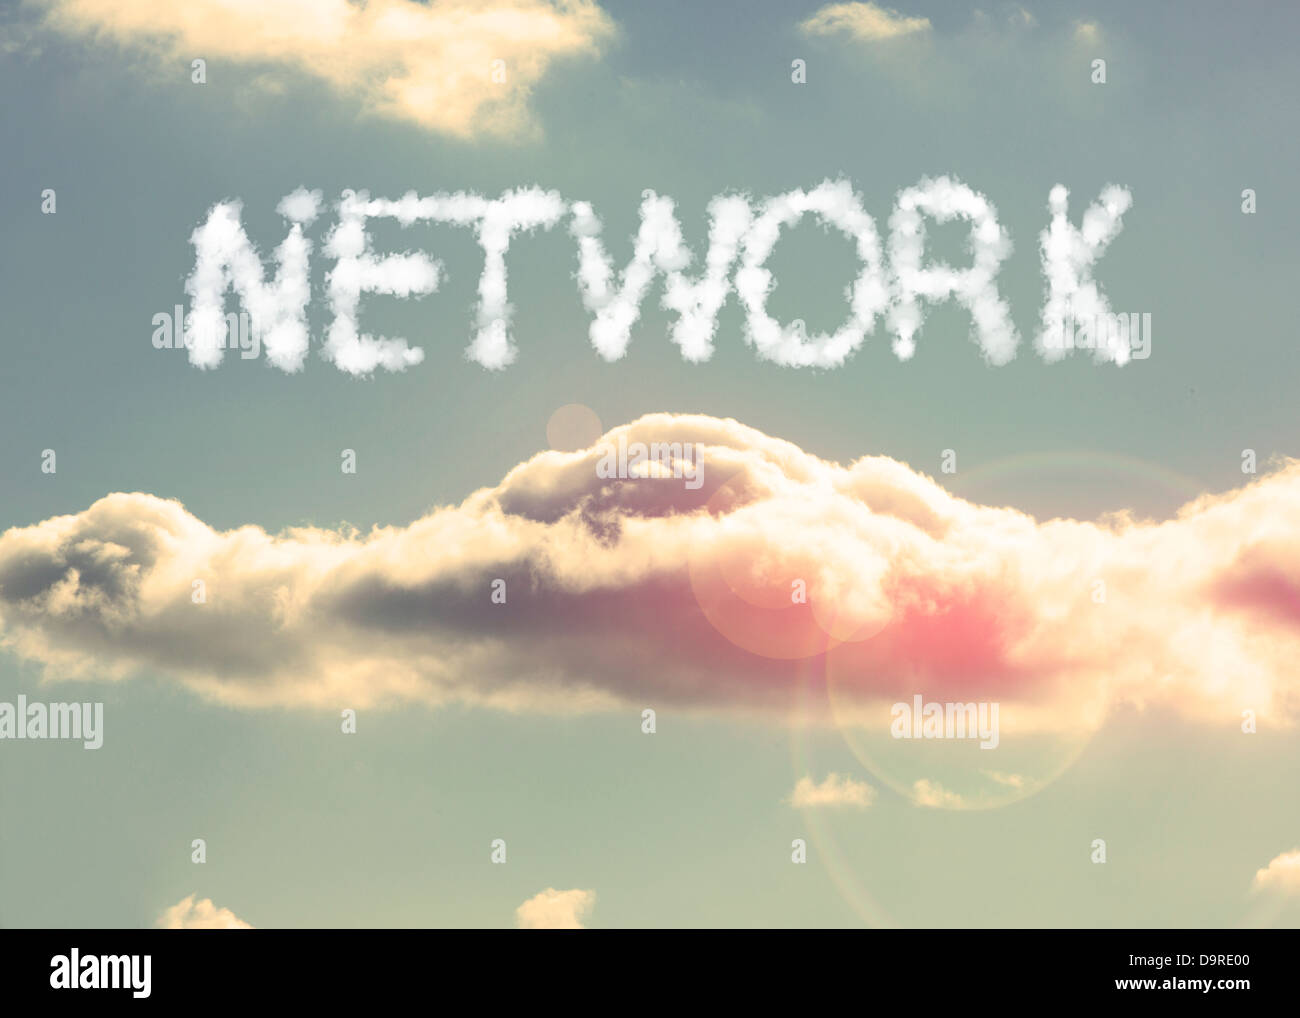 Clouds spelling out network - Stock Image